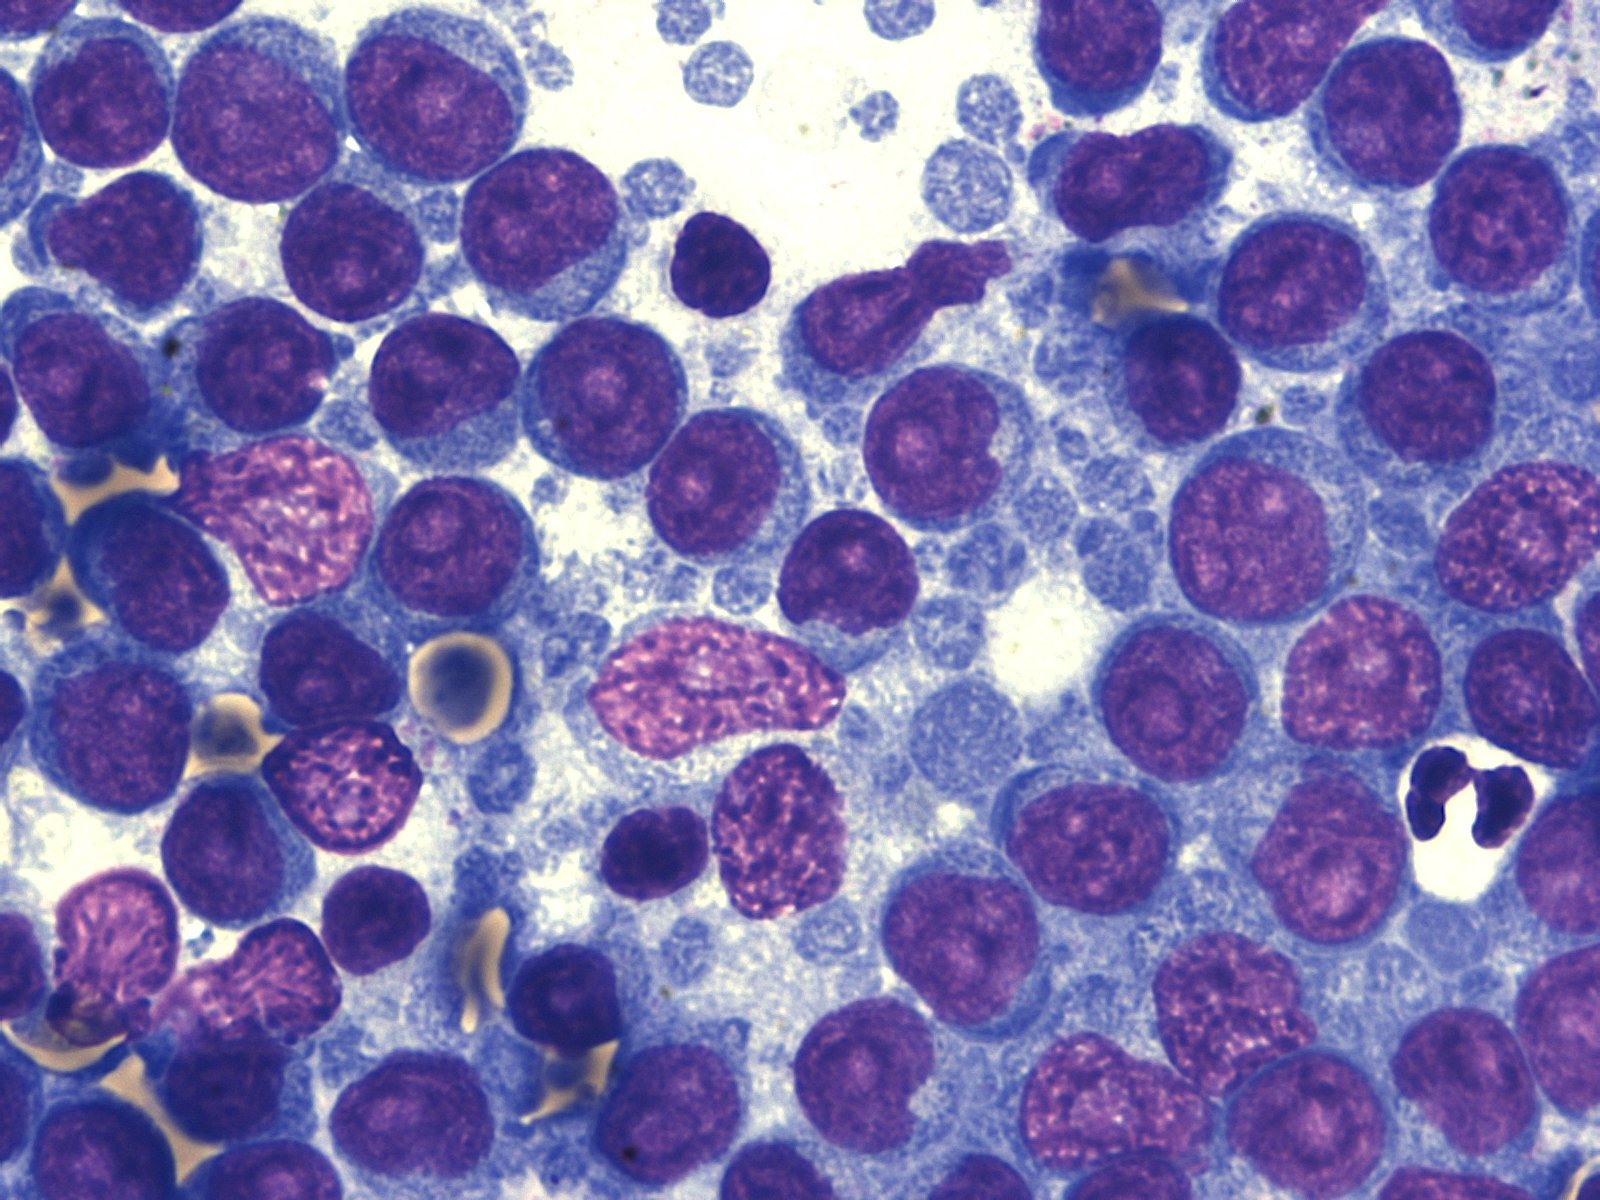 Marginal zone B-cell lymphoma, lymph node, dog.